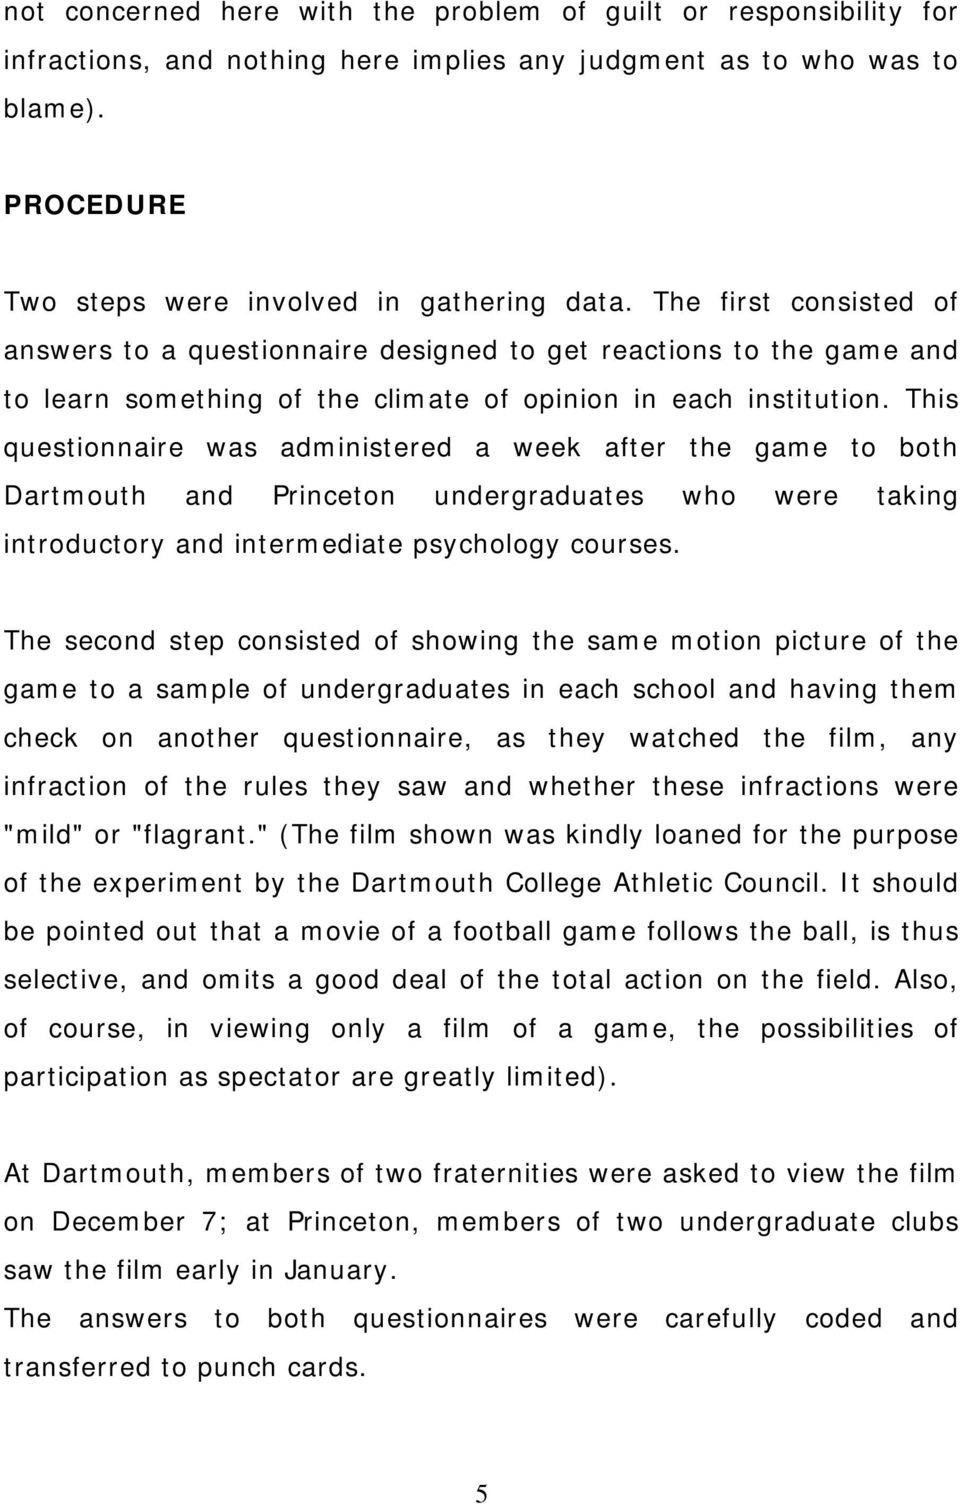 This questionnaire was administered a week after the game to both Dartmouth and Princeton undergraduates who were taking introductory and intermediate psychology courses.